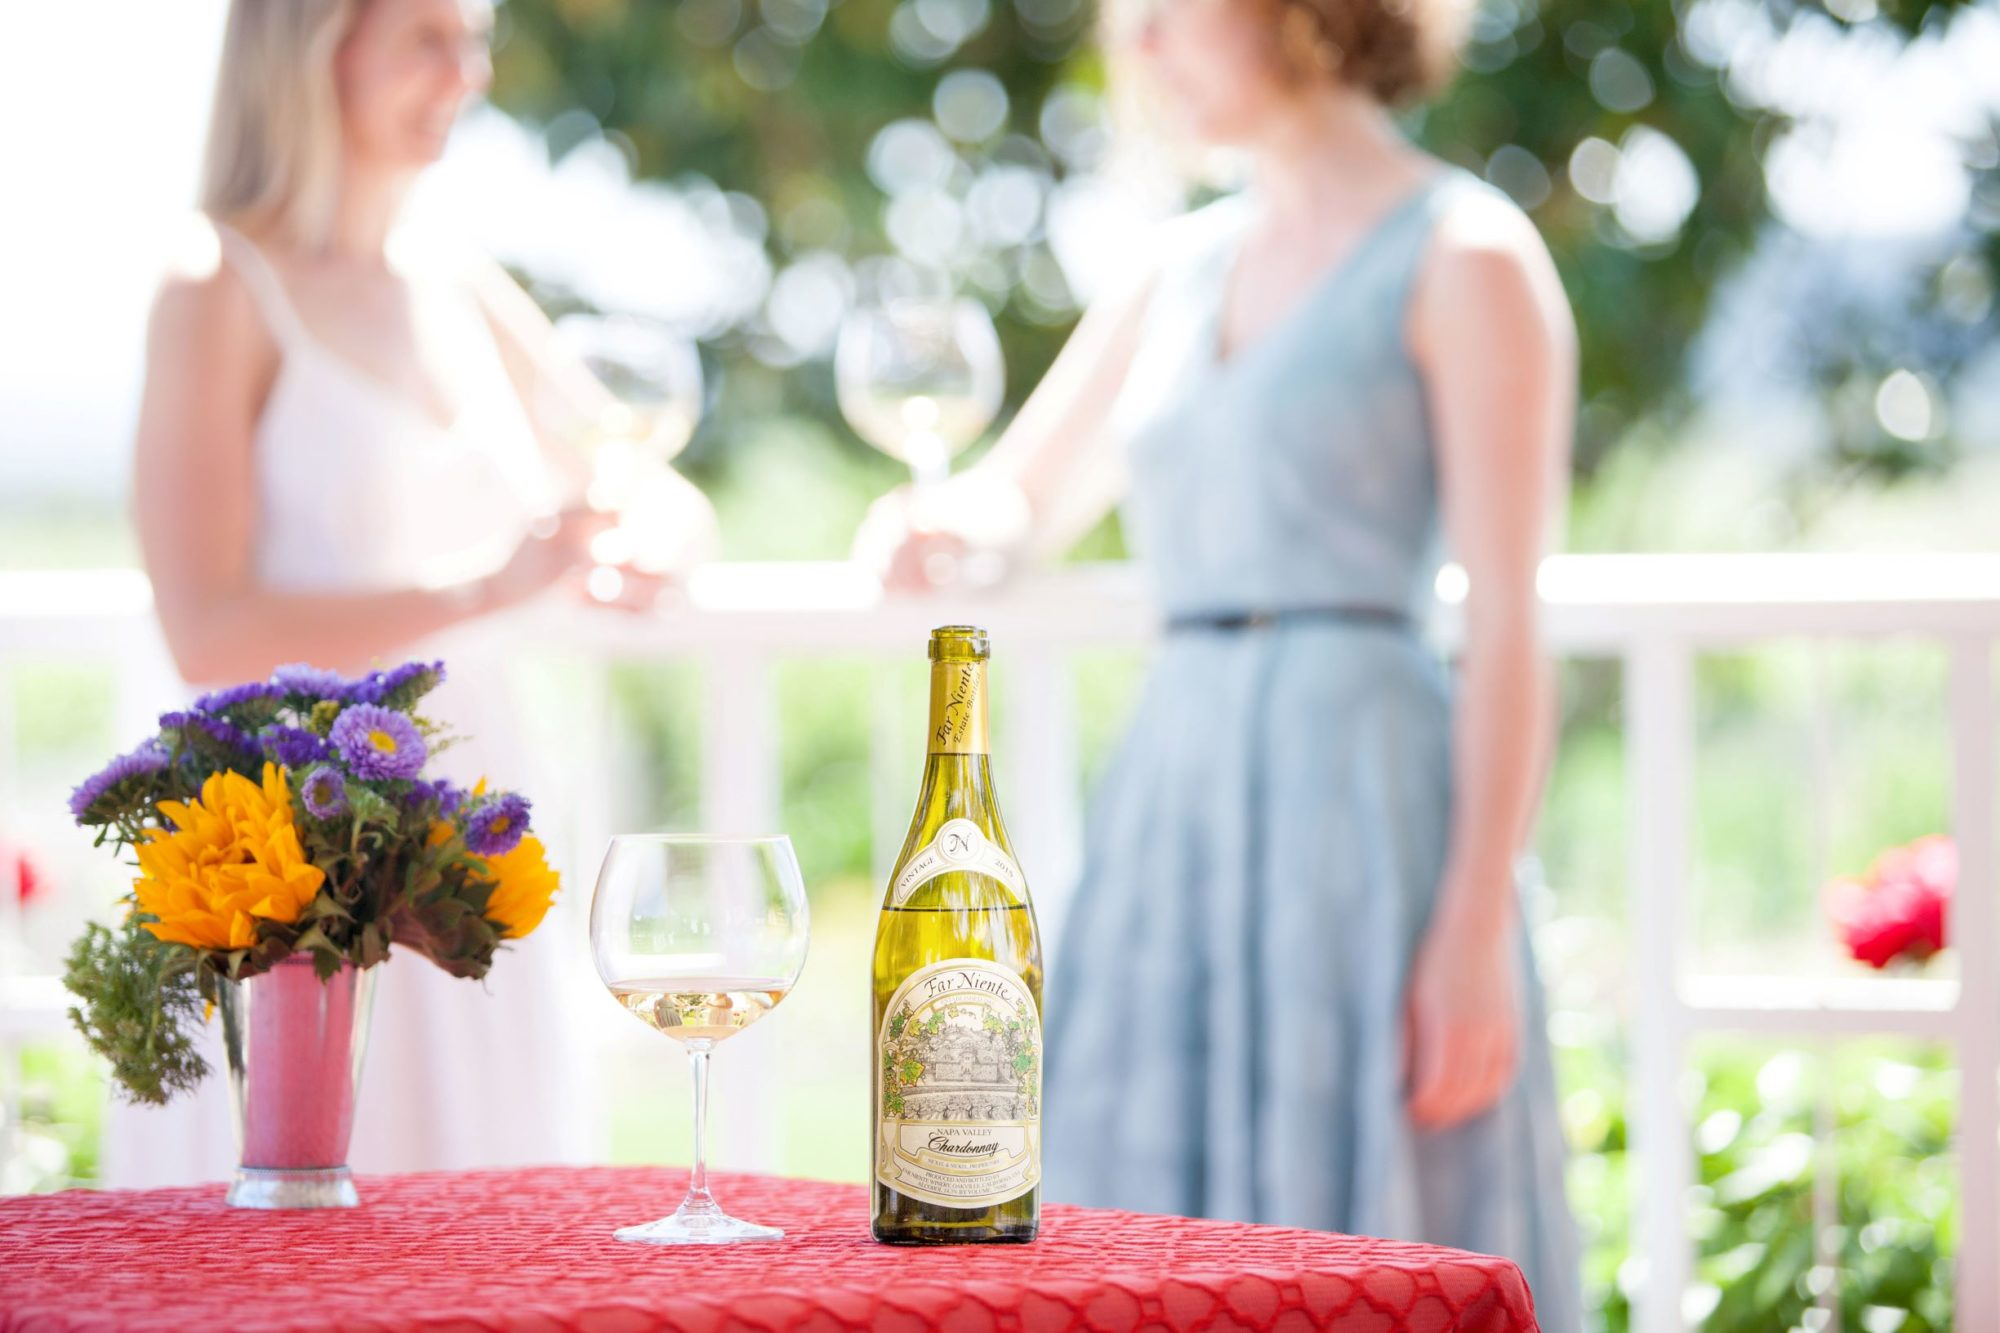 Summer wine and food pairing